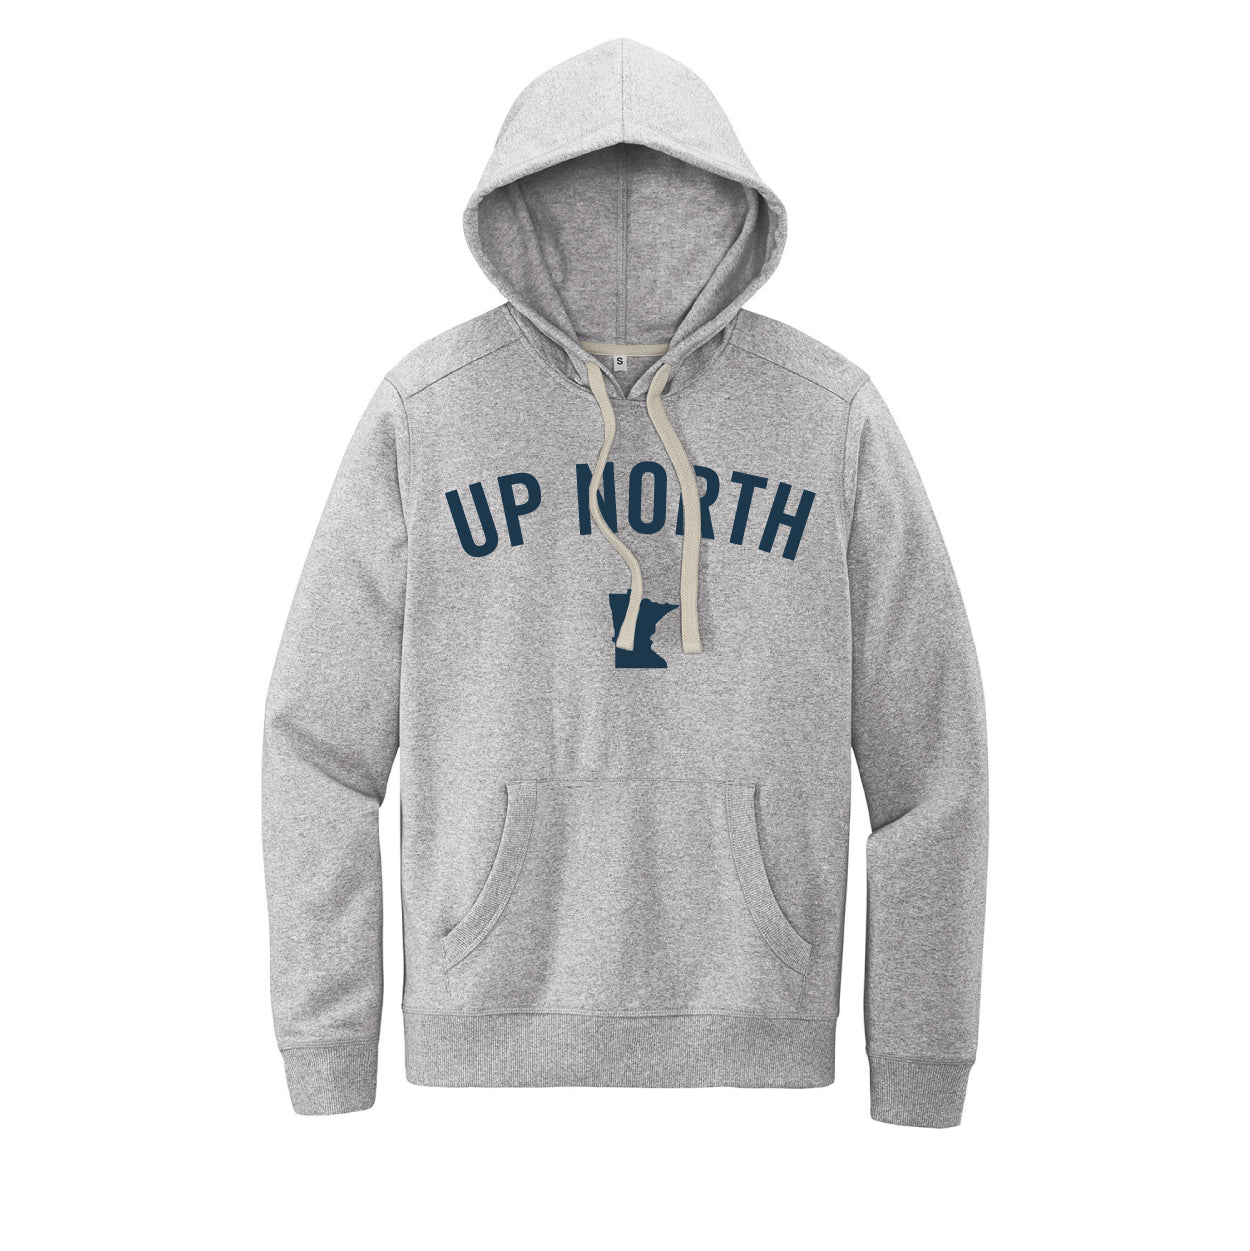 Unisex Light Grey Up North MN Felt Hoodie